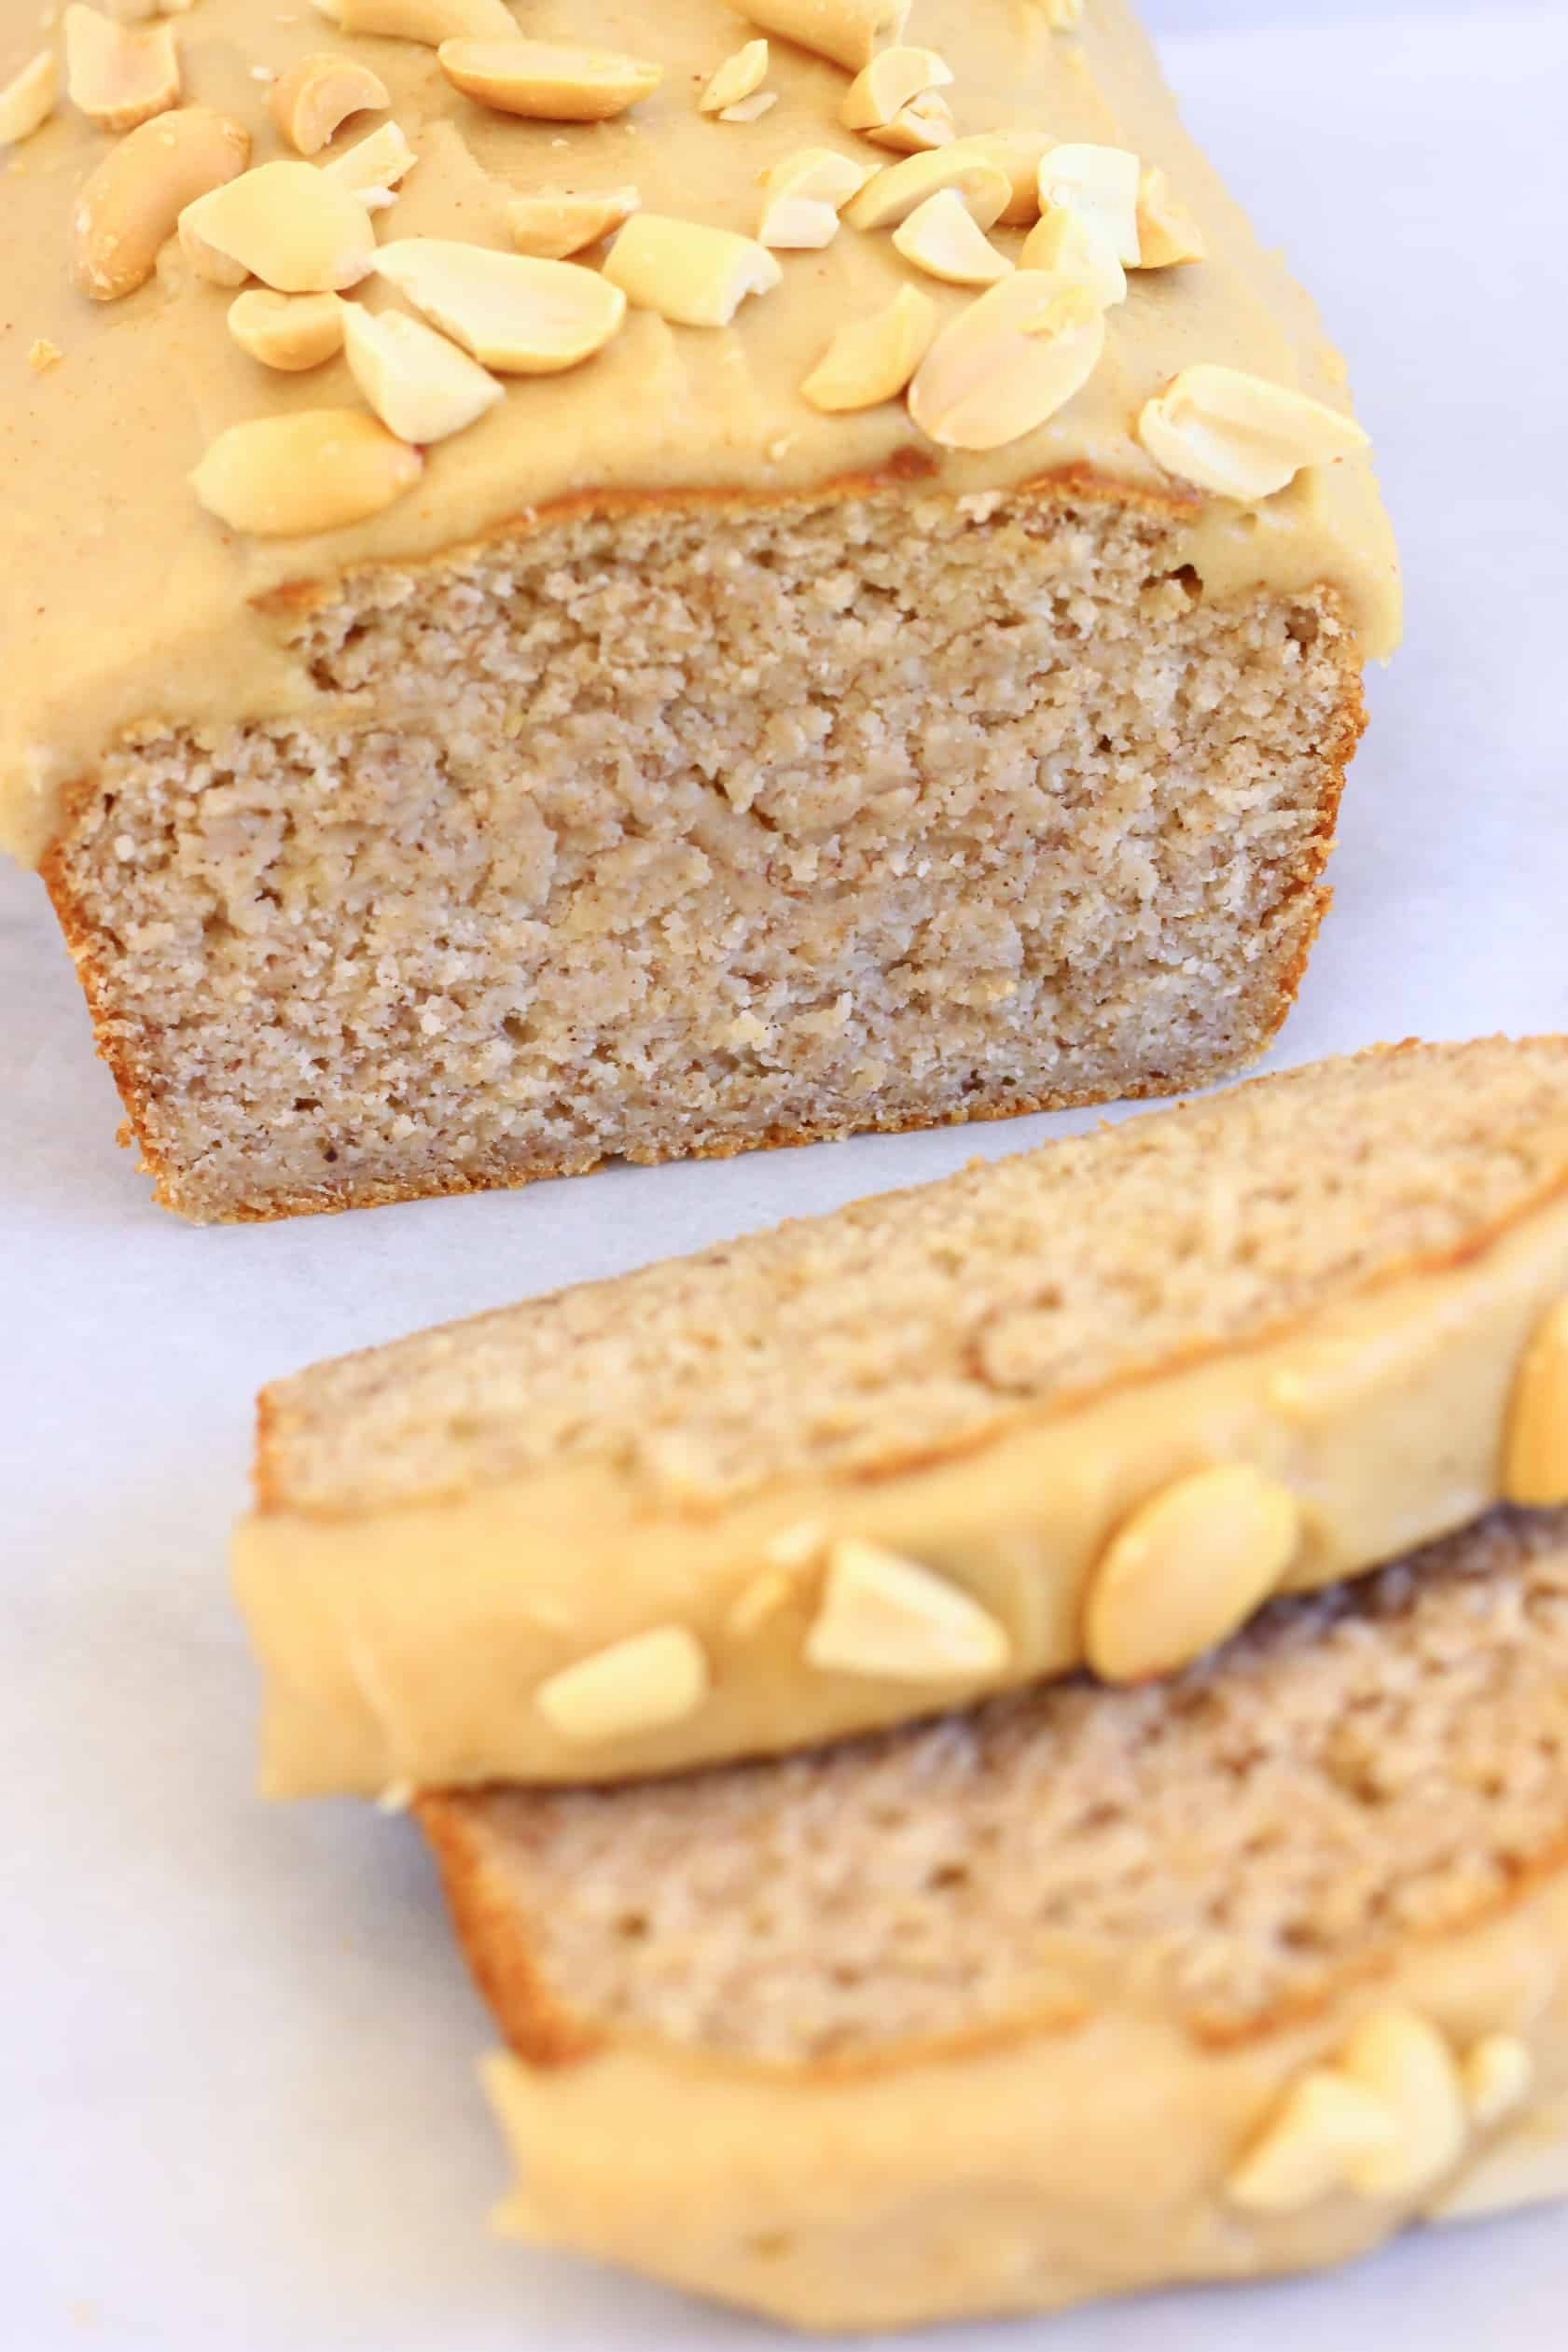 A loaf of gluten-free vegan peanut butter banana bread with peanut butter frosting with two slices next to it